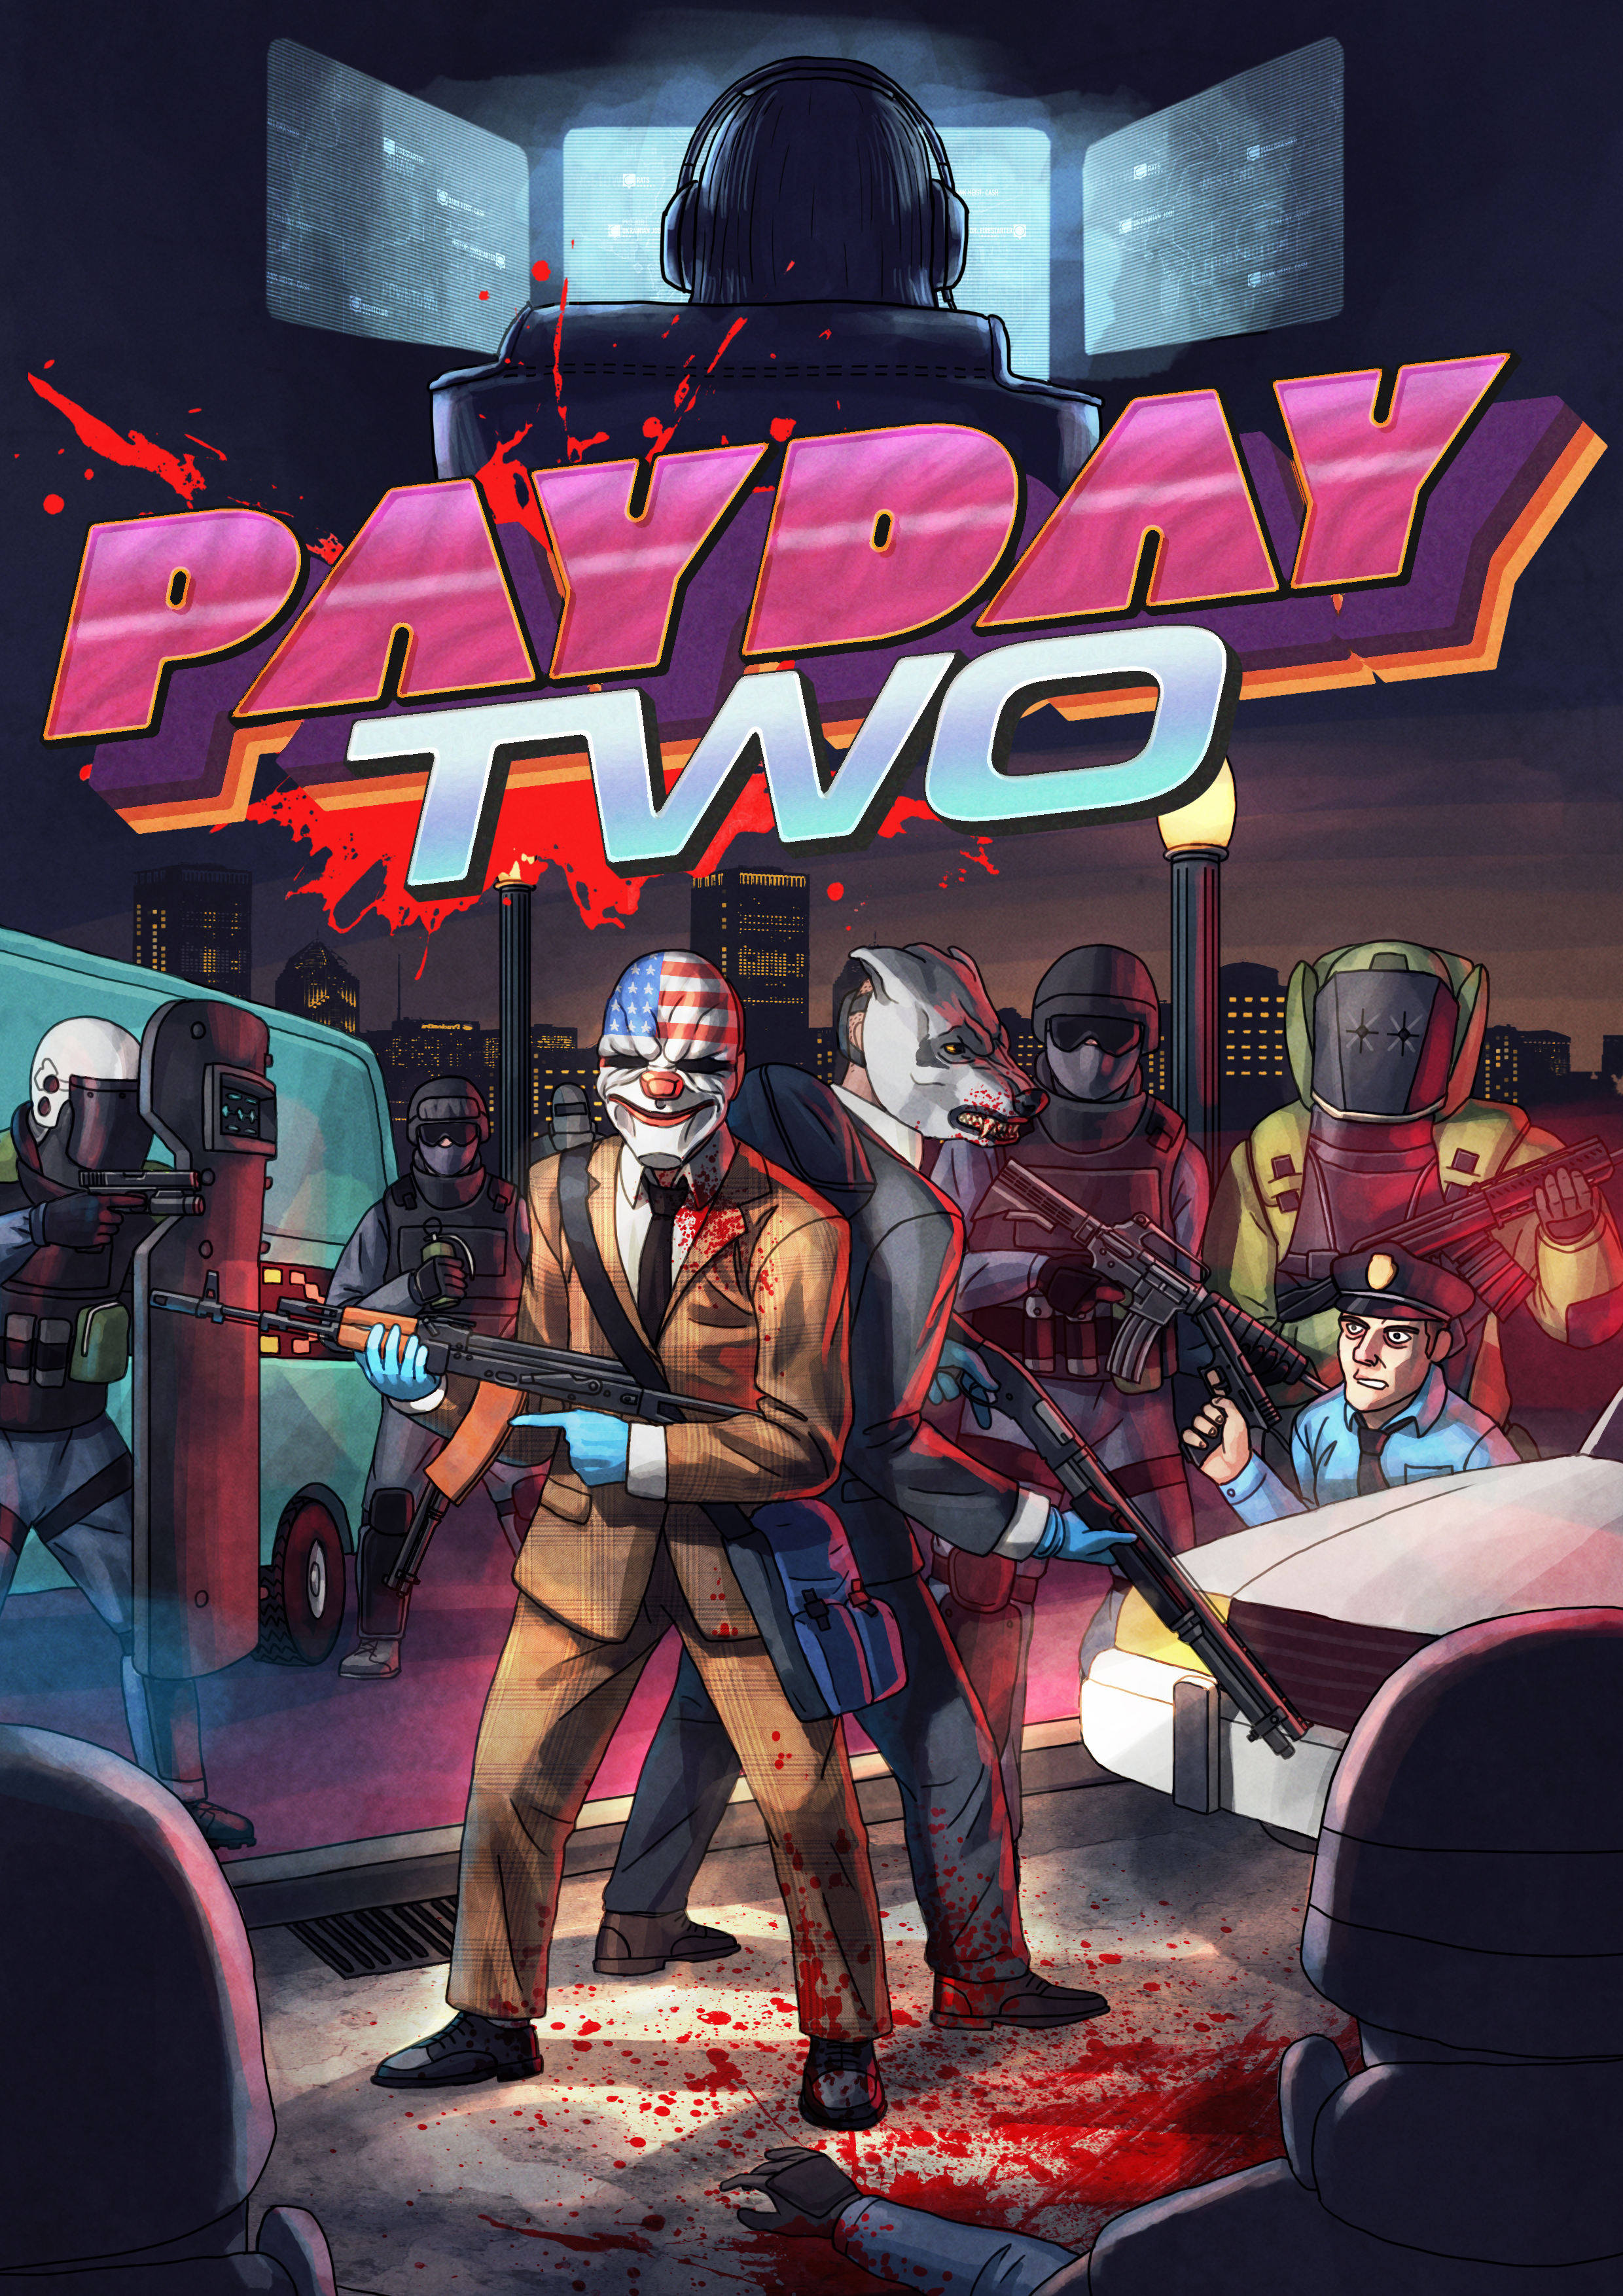 Hotline Miami is coming to Payday 2 later this month